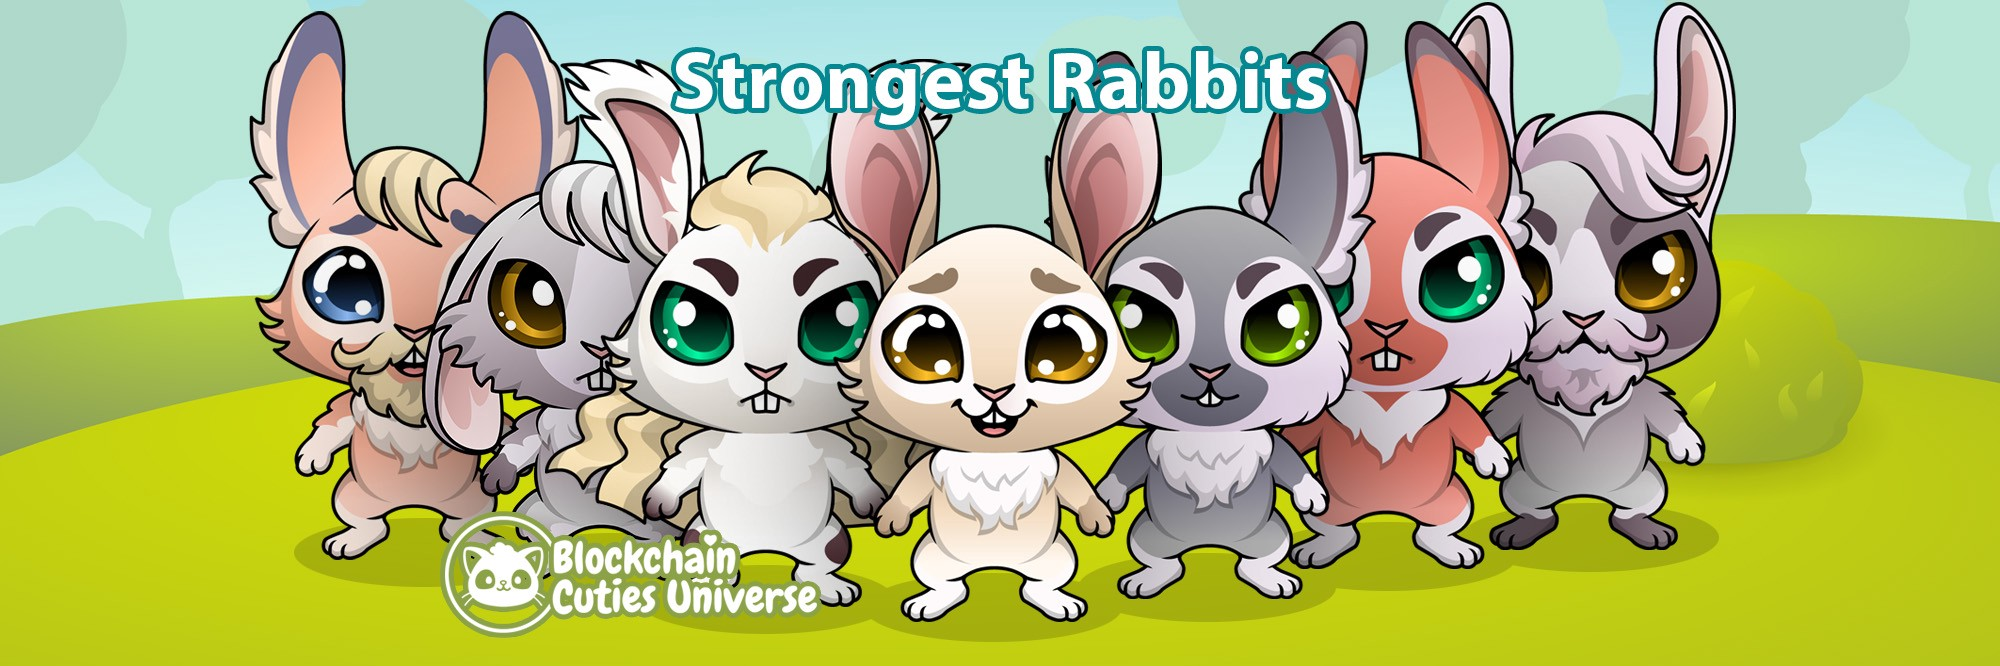 Unique Rabbit Attributes